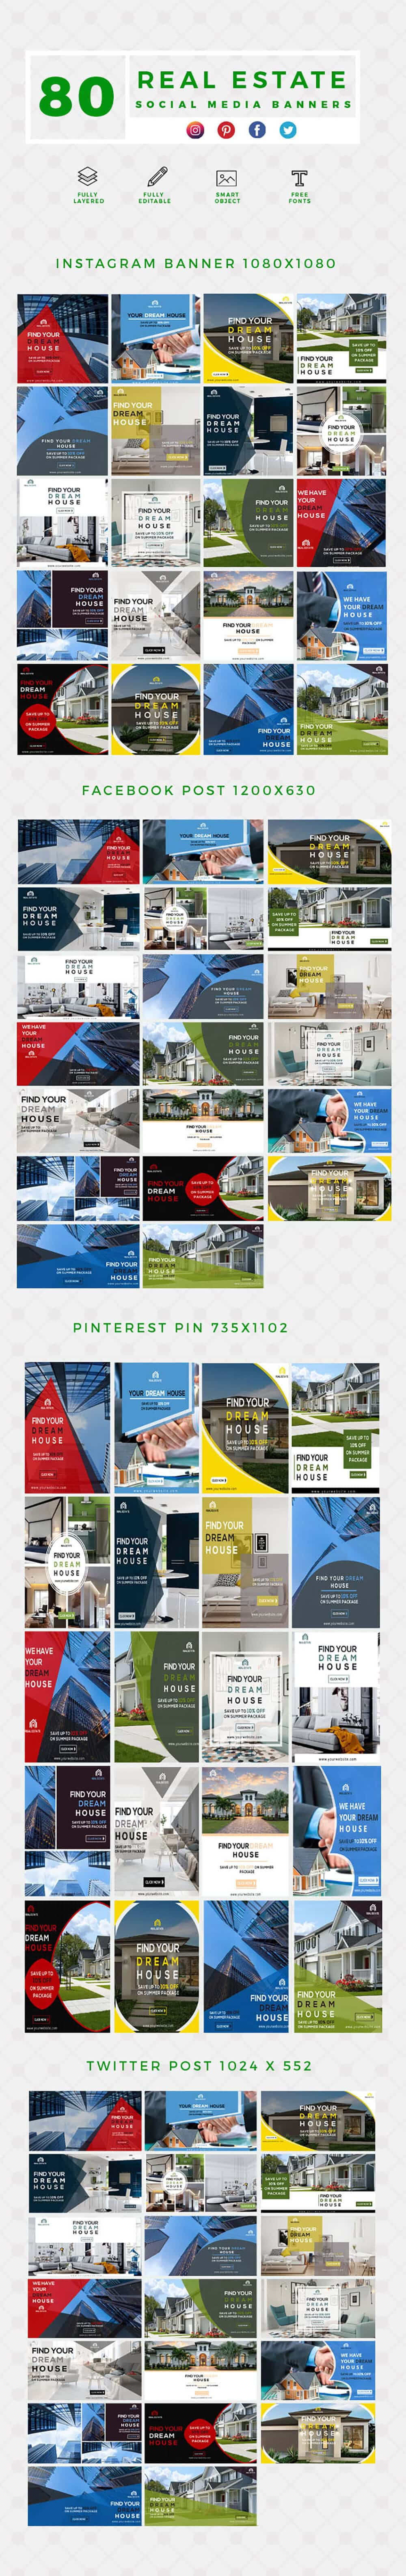 640 Templates for Facebook, Instagram, Twitter, Pinterest - $15 - PREVIEW REAL ESTATE min